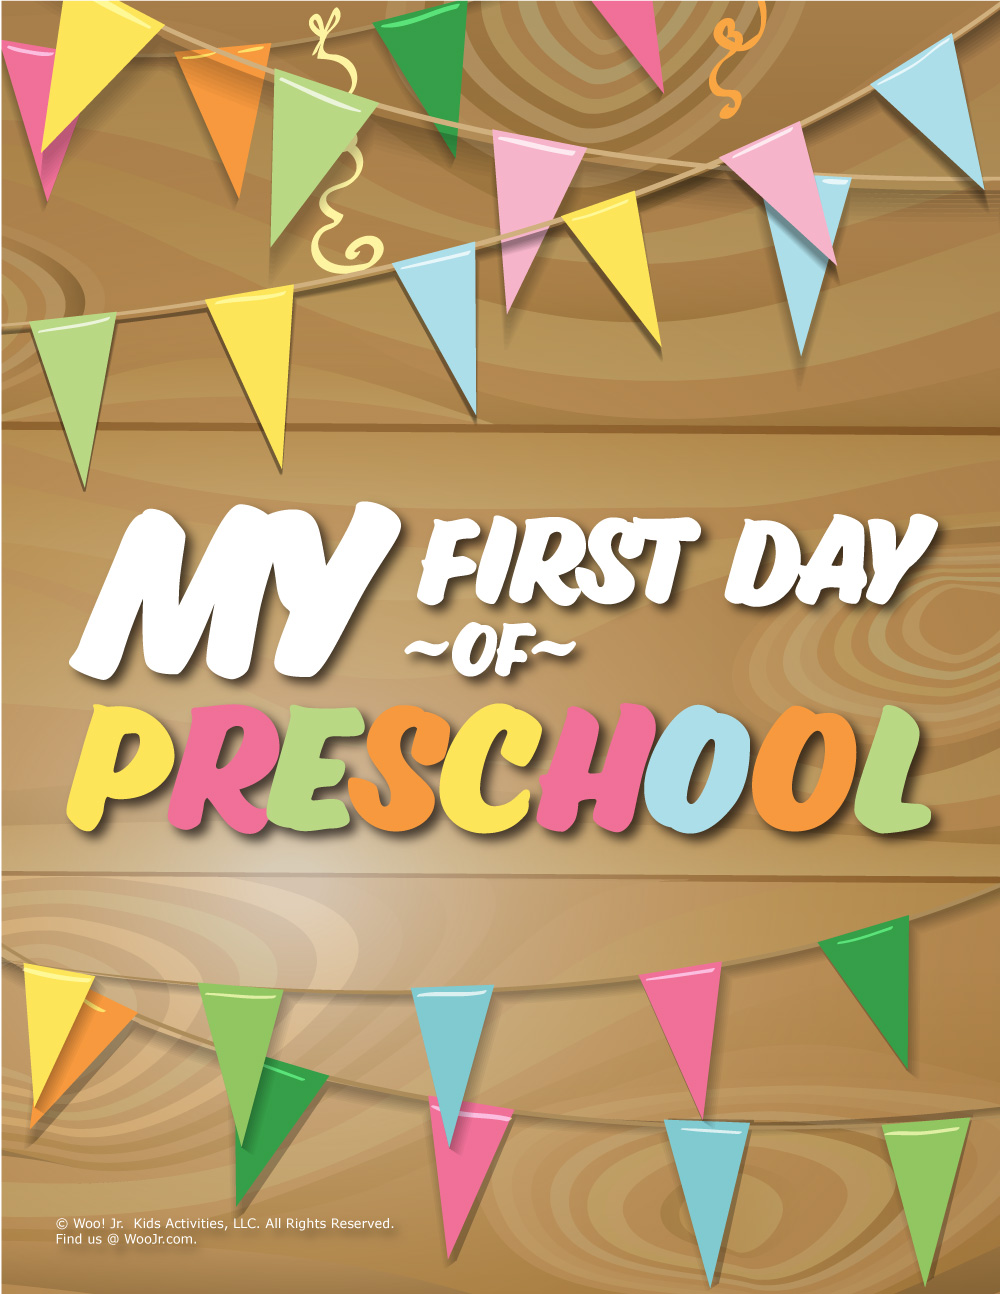 image about First Day of Preschool Sign Printable identify To start with Working day of Preschool Indication - Wooden Woo! Jr. Youngsters Actions